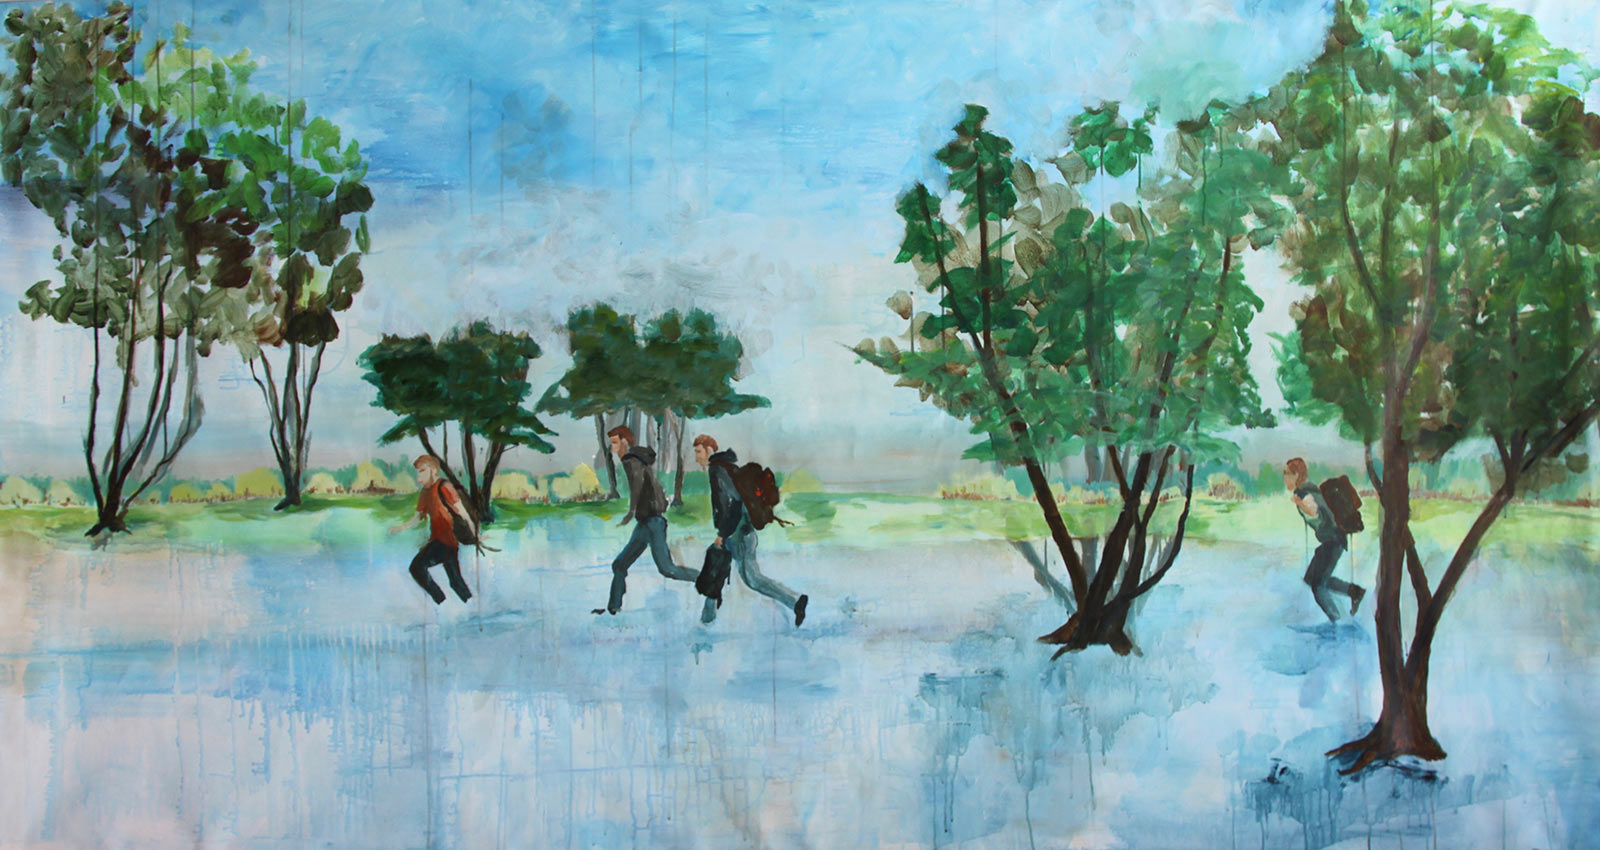 painting refugees flee